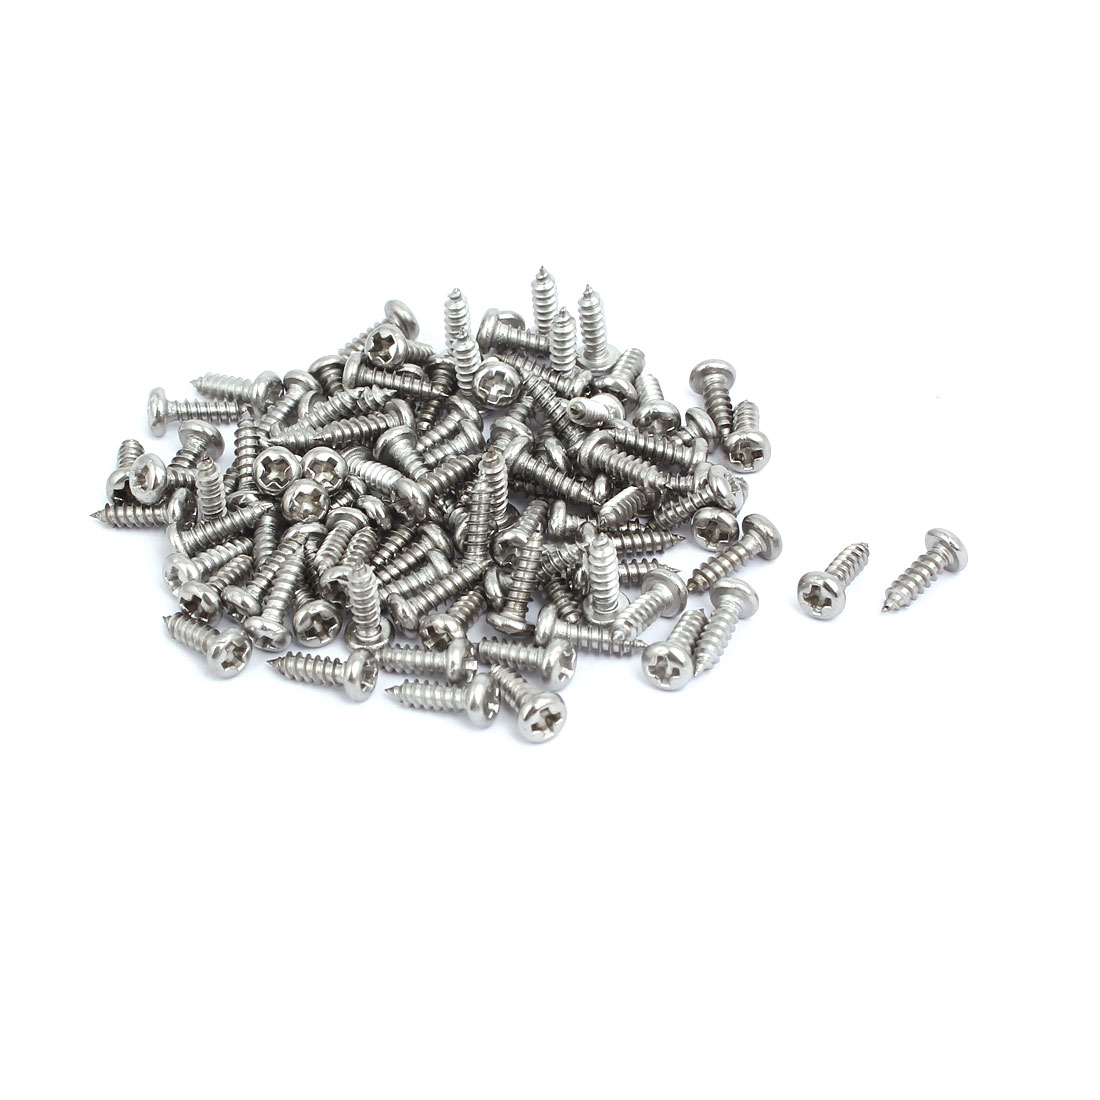 M3x10mm 304 Stainless Steel Phillips Drive Pan Head Self Tapping Screws 100pcs